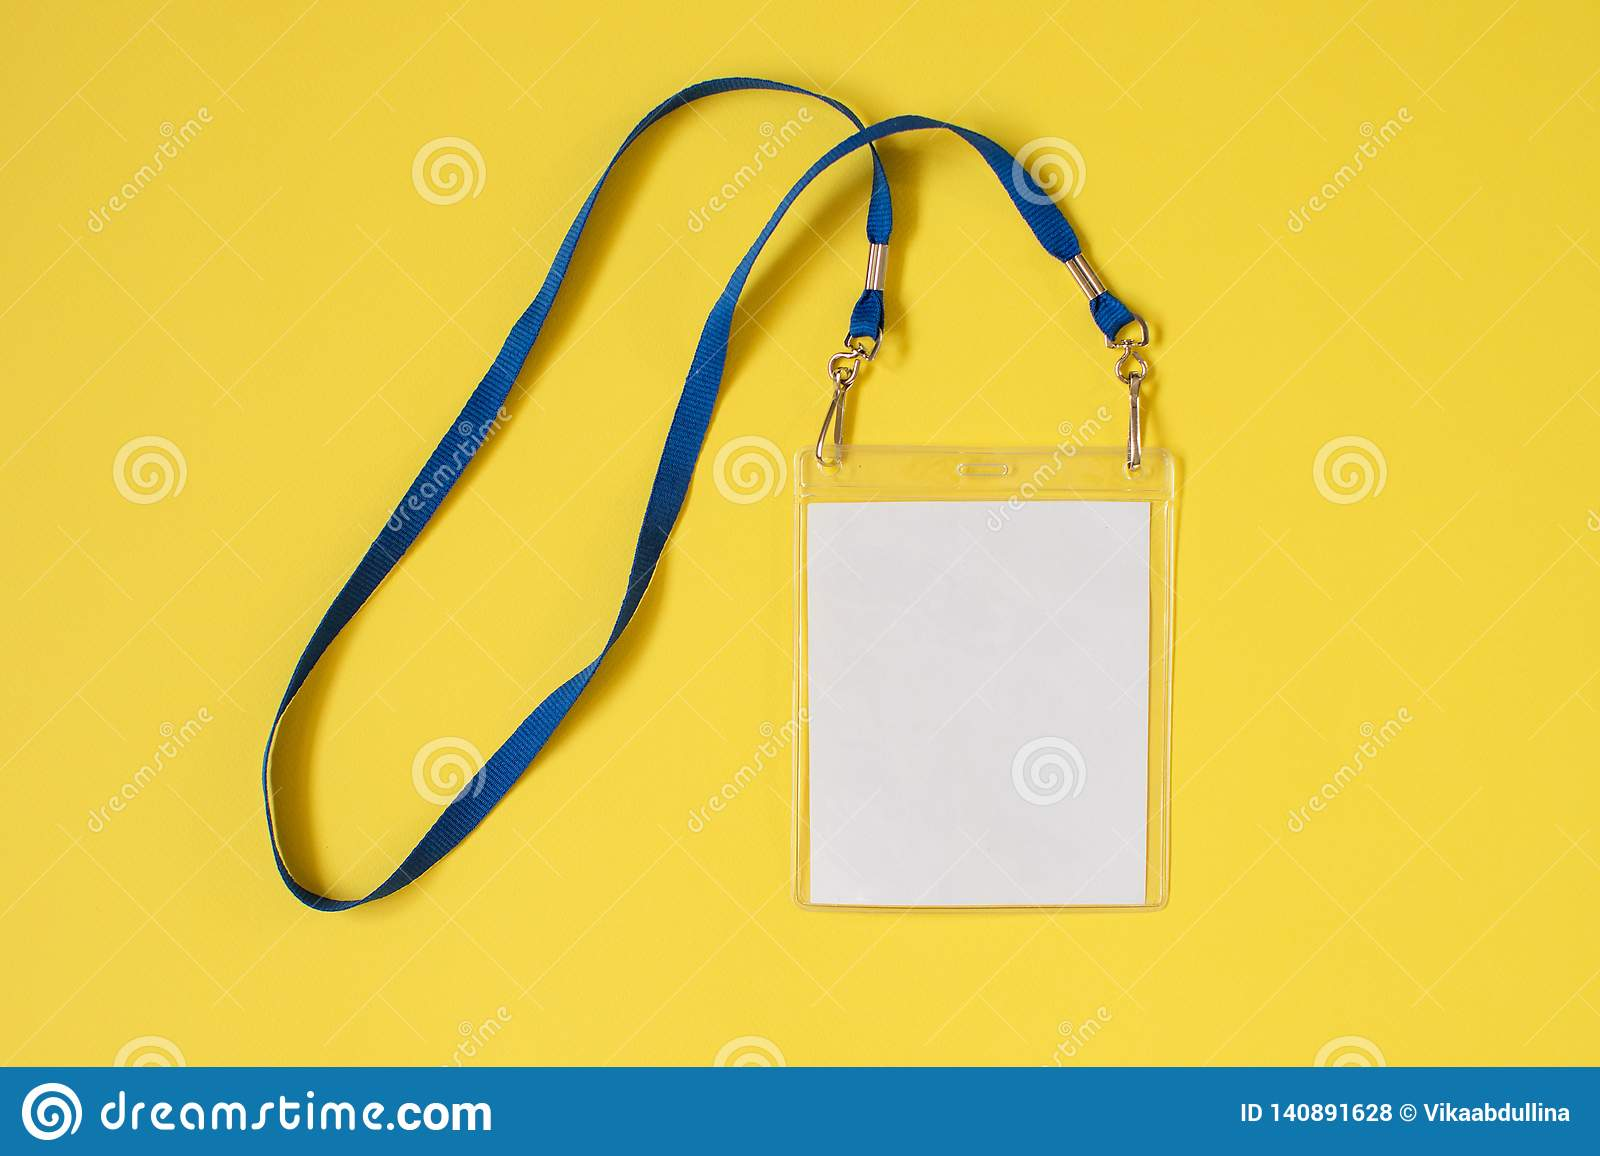 Empty ID card badge icon with blue belt, on yellow background.